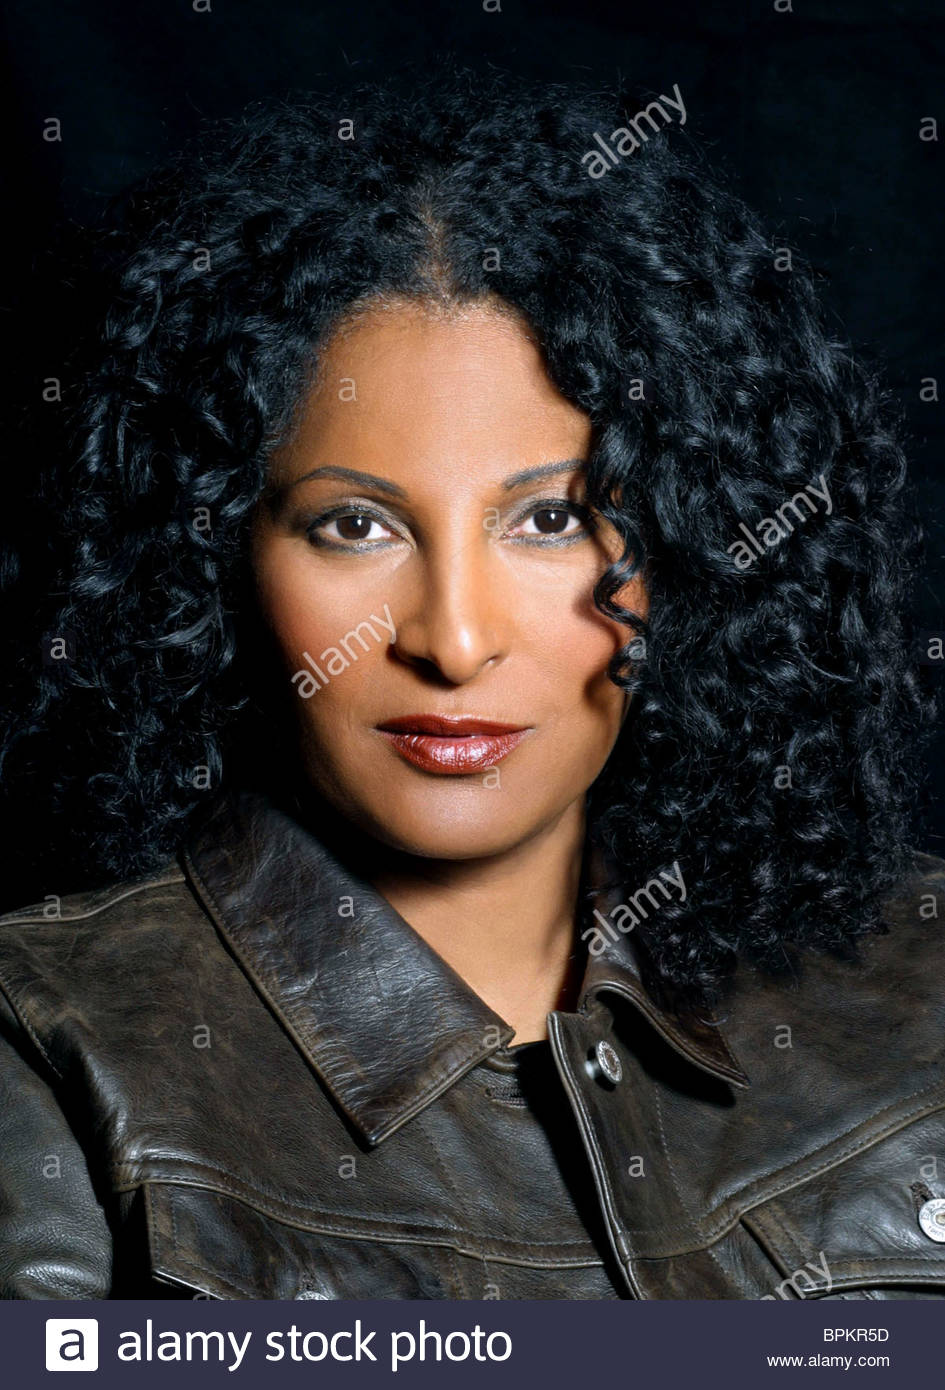 2019 Pam Grier nudes (36 photos), Topless, Sideboobs, Feet, butt 2006